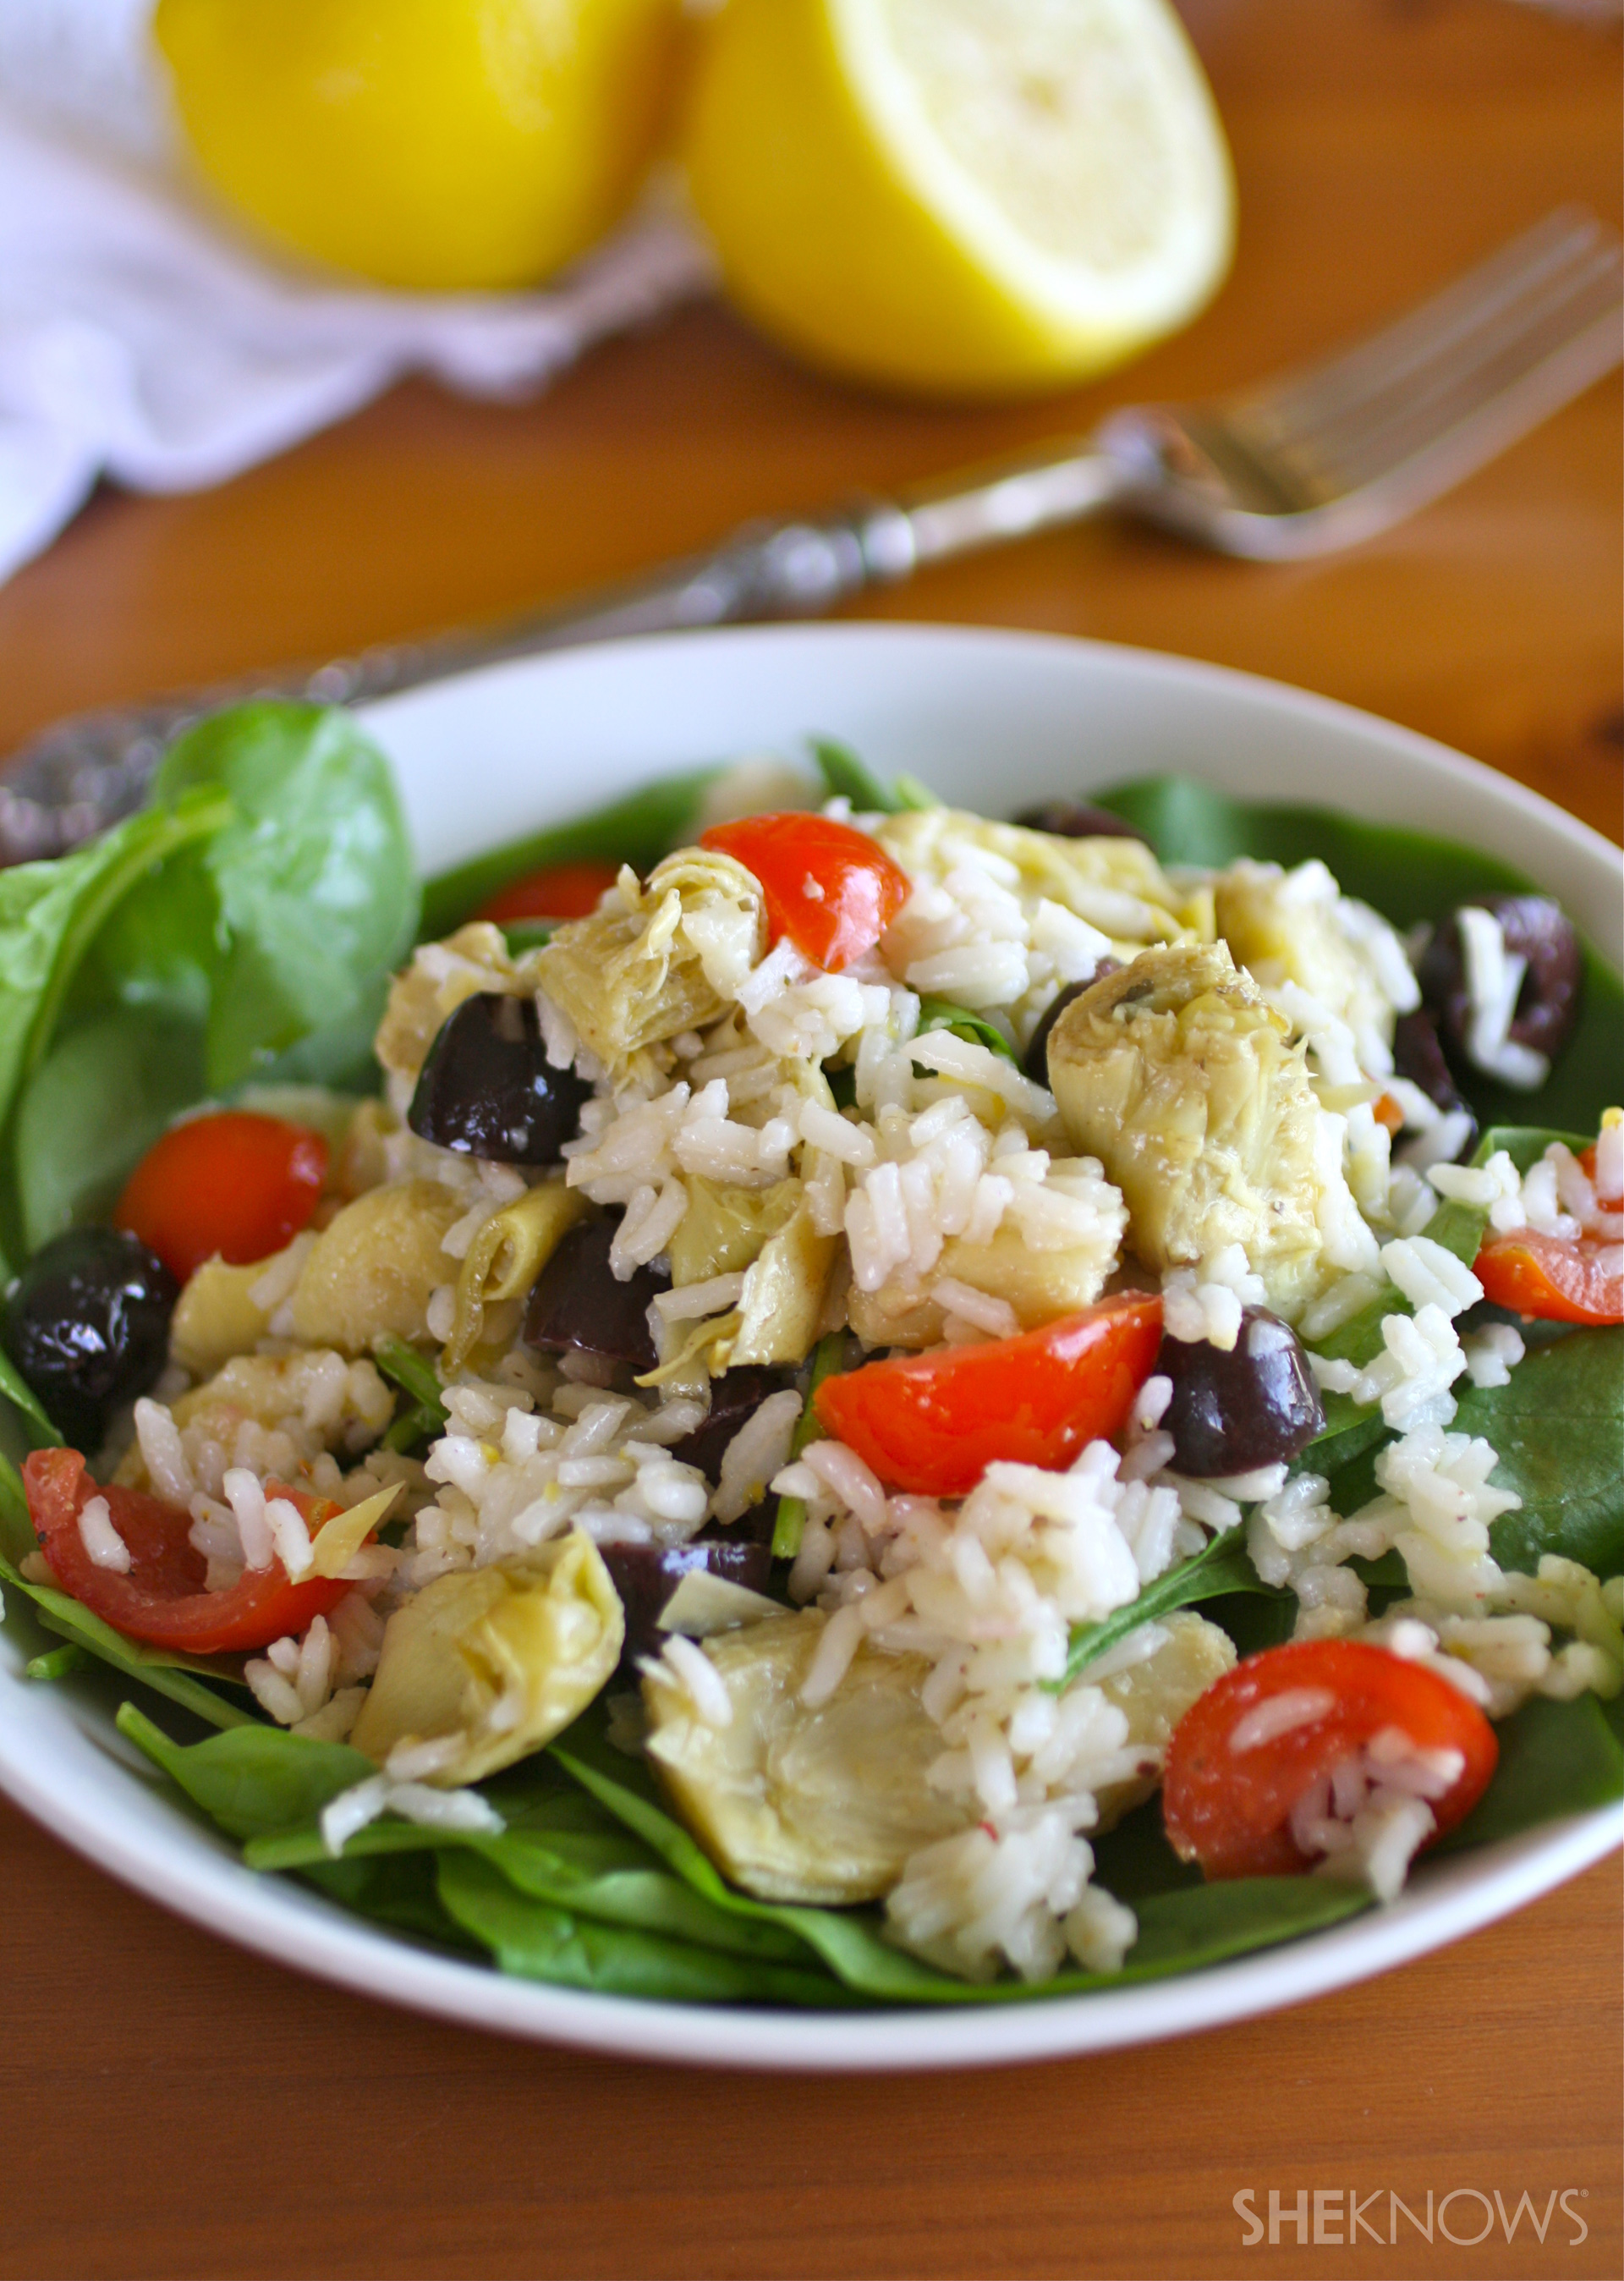 A gluten-free, grain-filled salad makes a perfect light summer meal